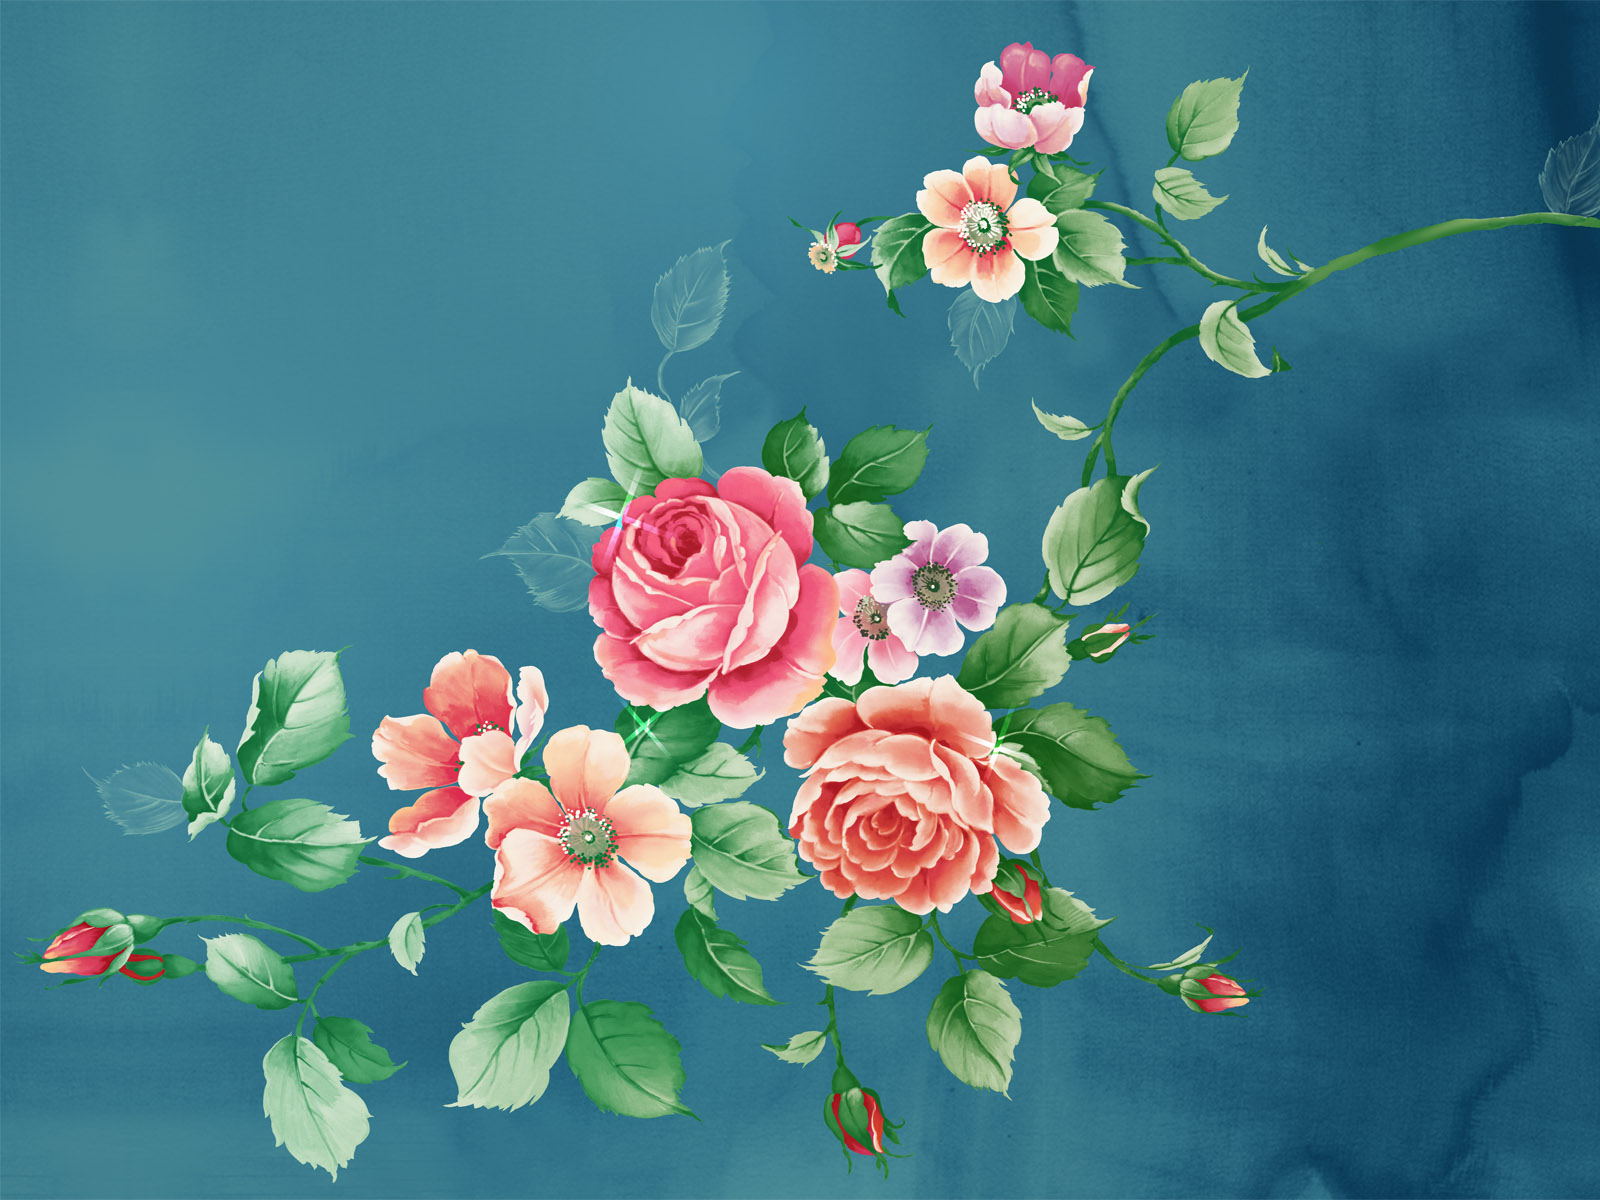 art flowers background wallpaper - photo #35